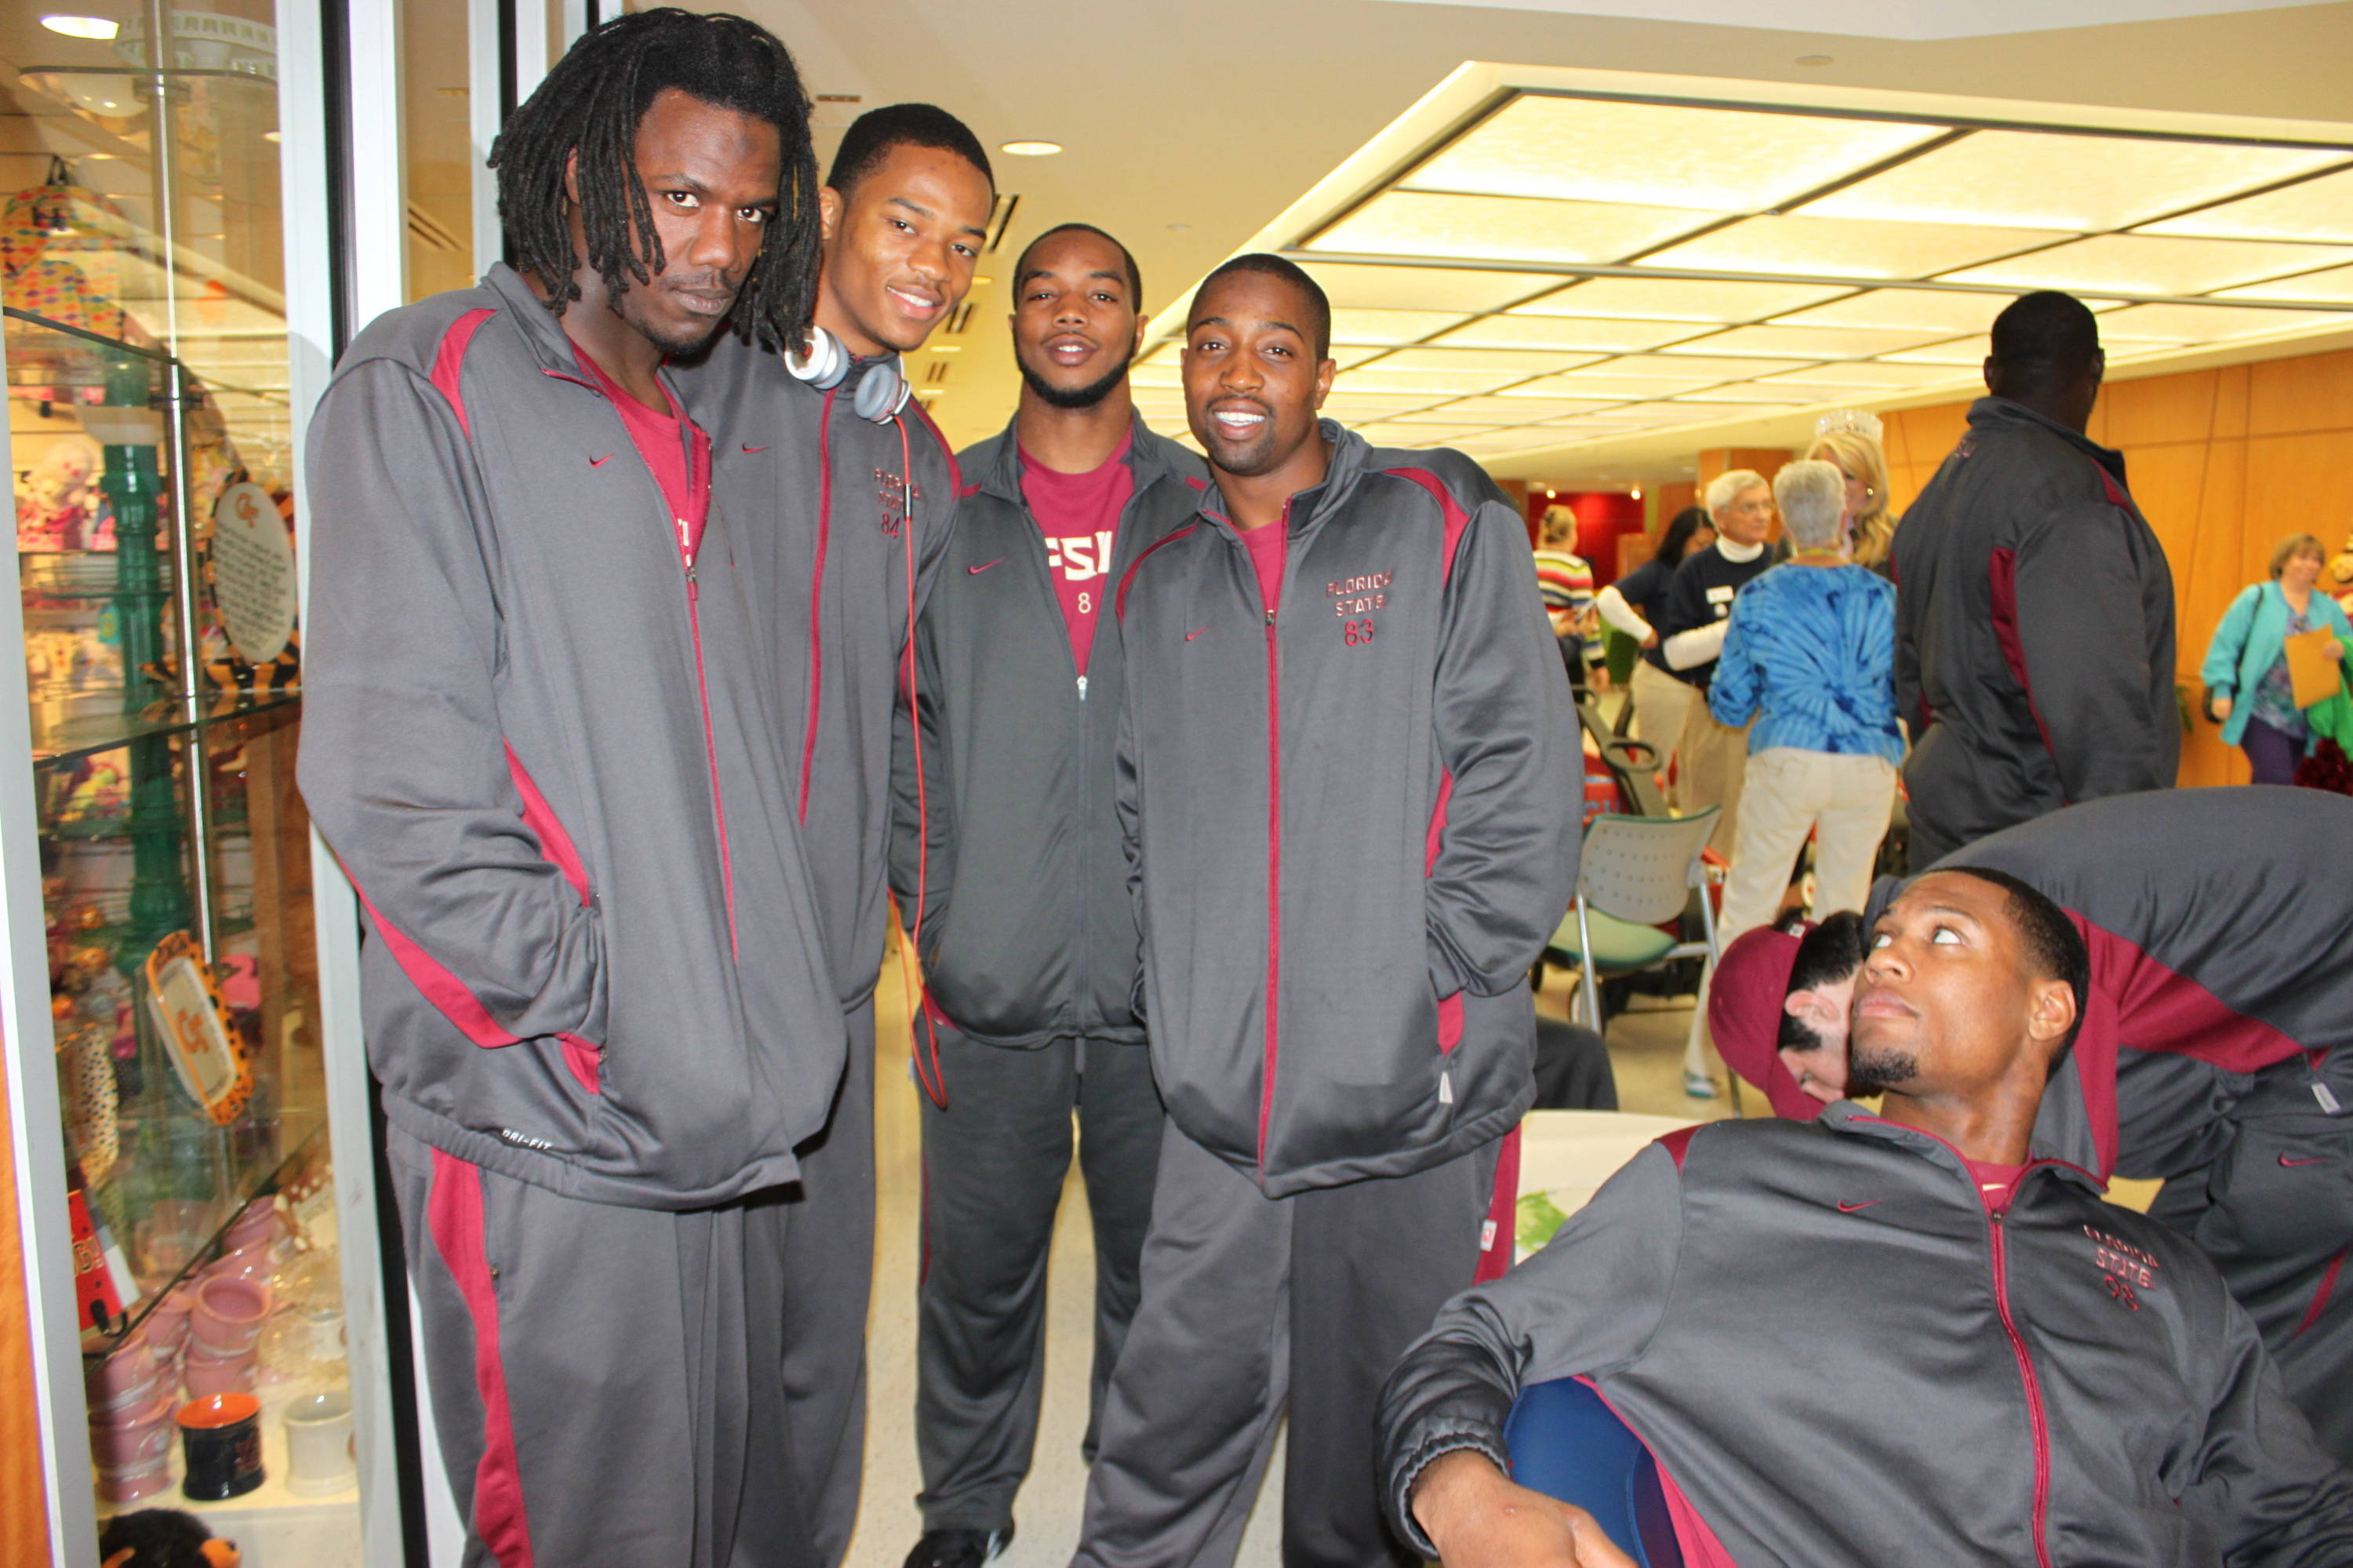 Chick-fil-A Bowl Hospital Visit